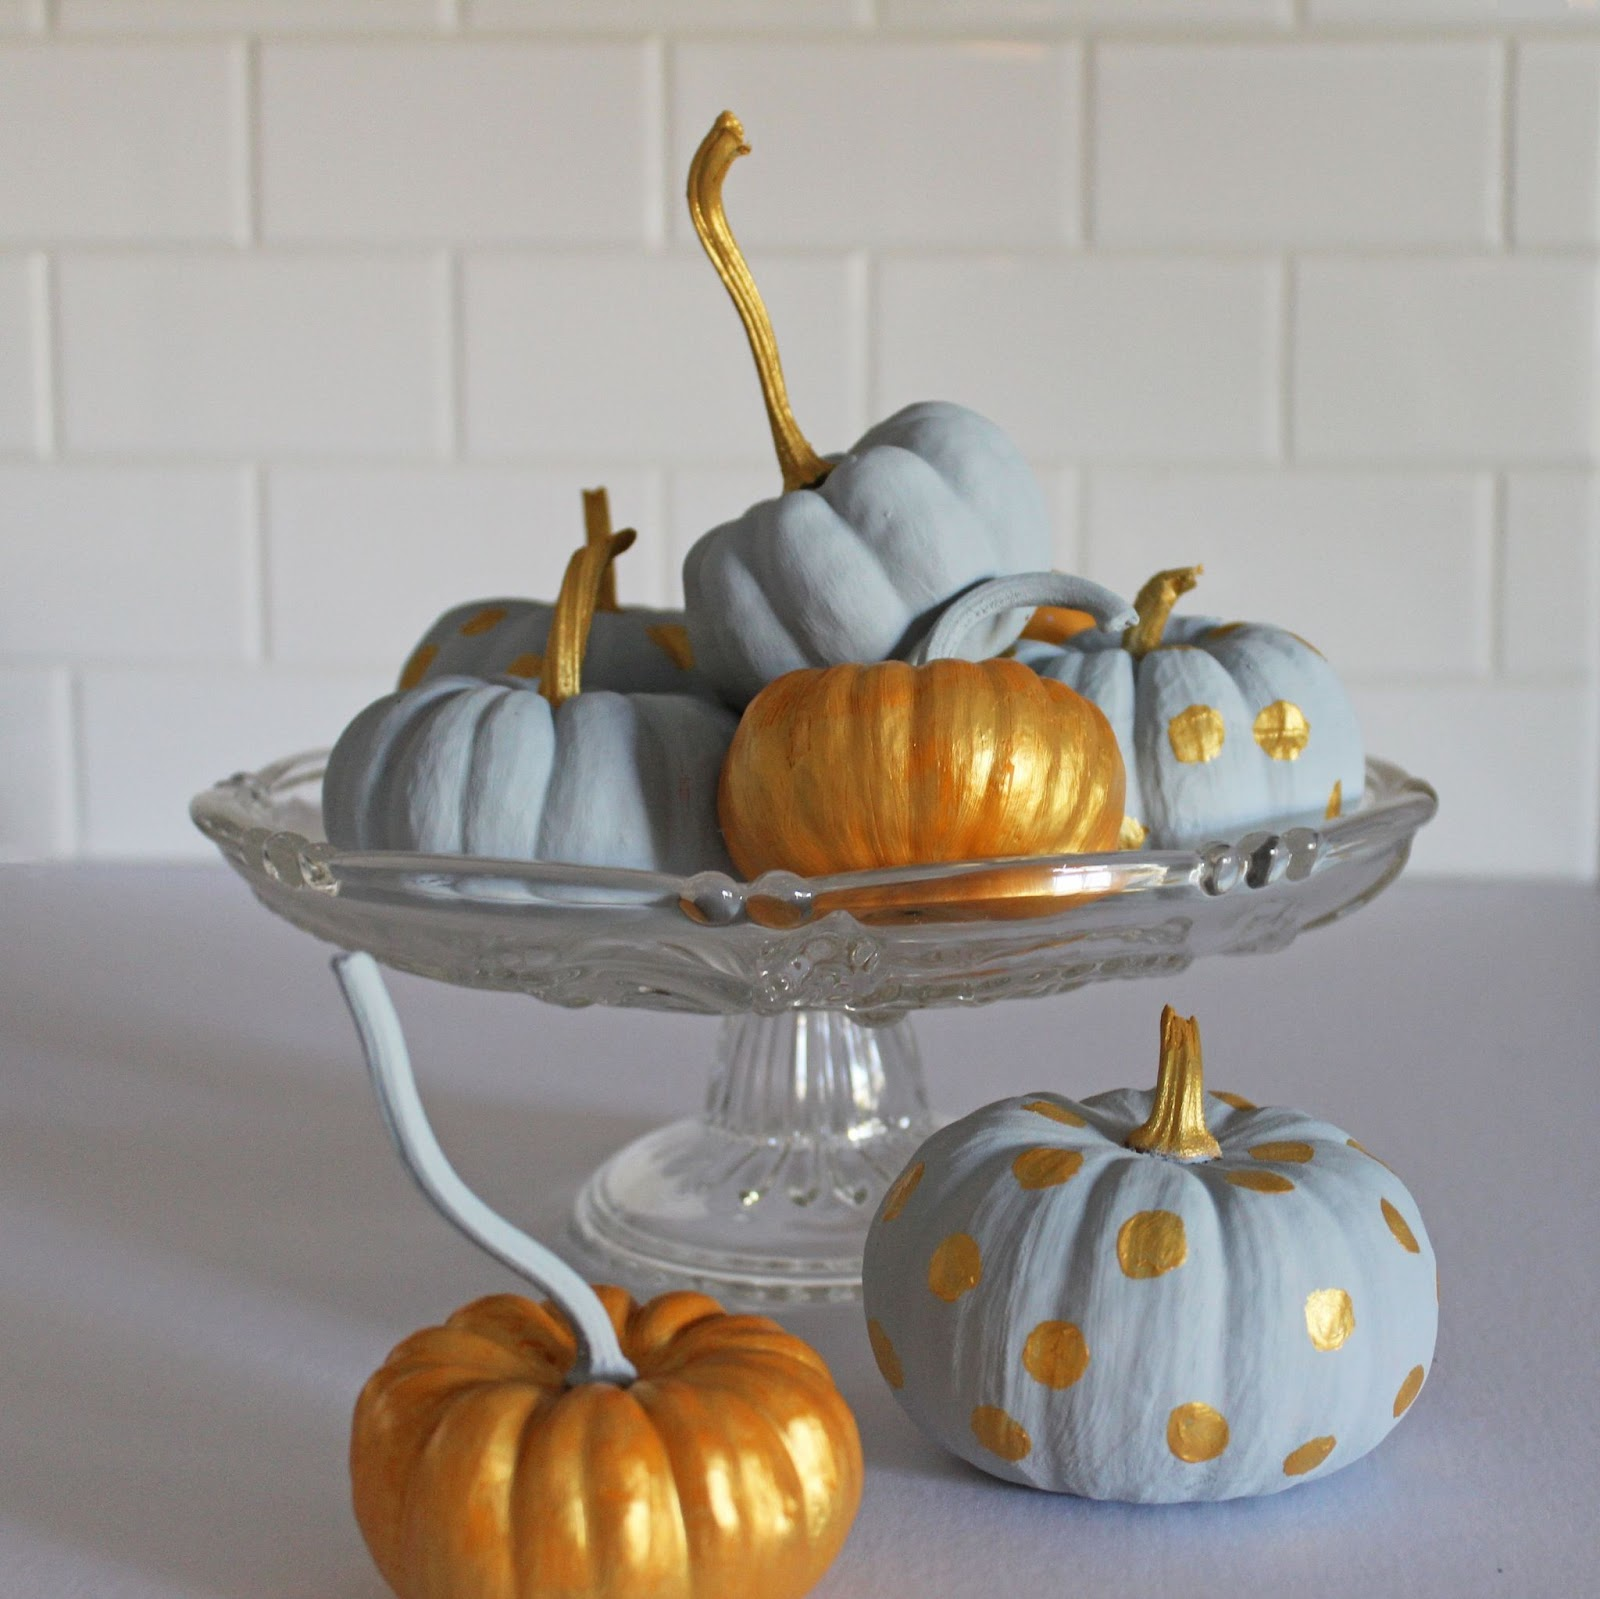 how to use pumpkins in your home to decorate. Images shows Grey and gold pumpkins displayed on a glass cake dish.